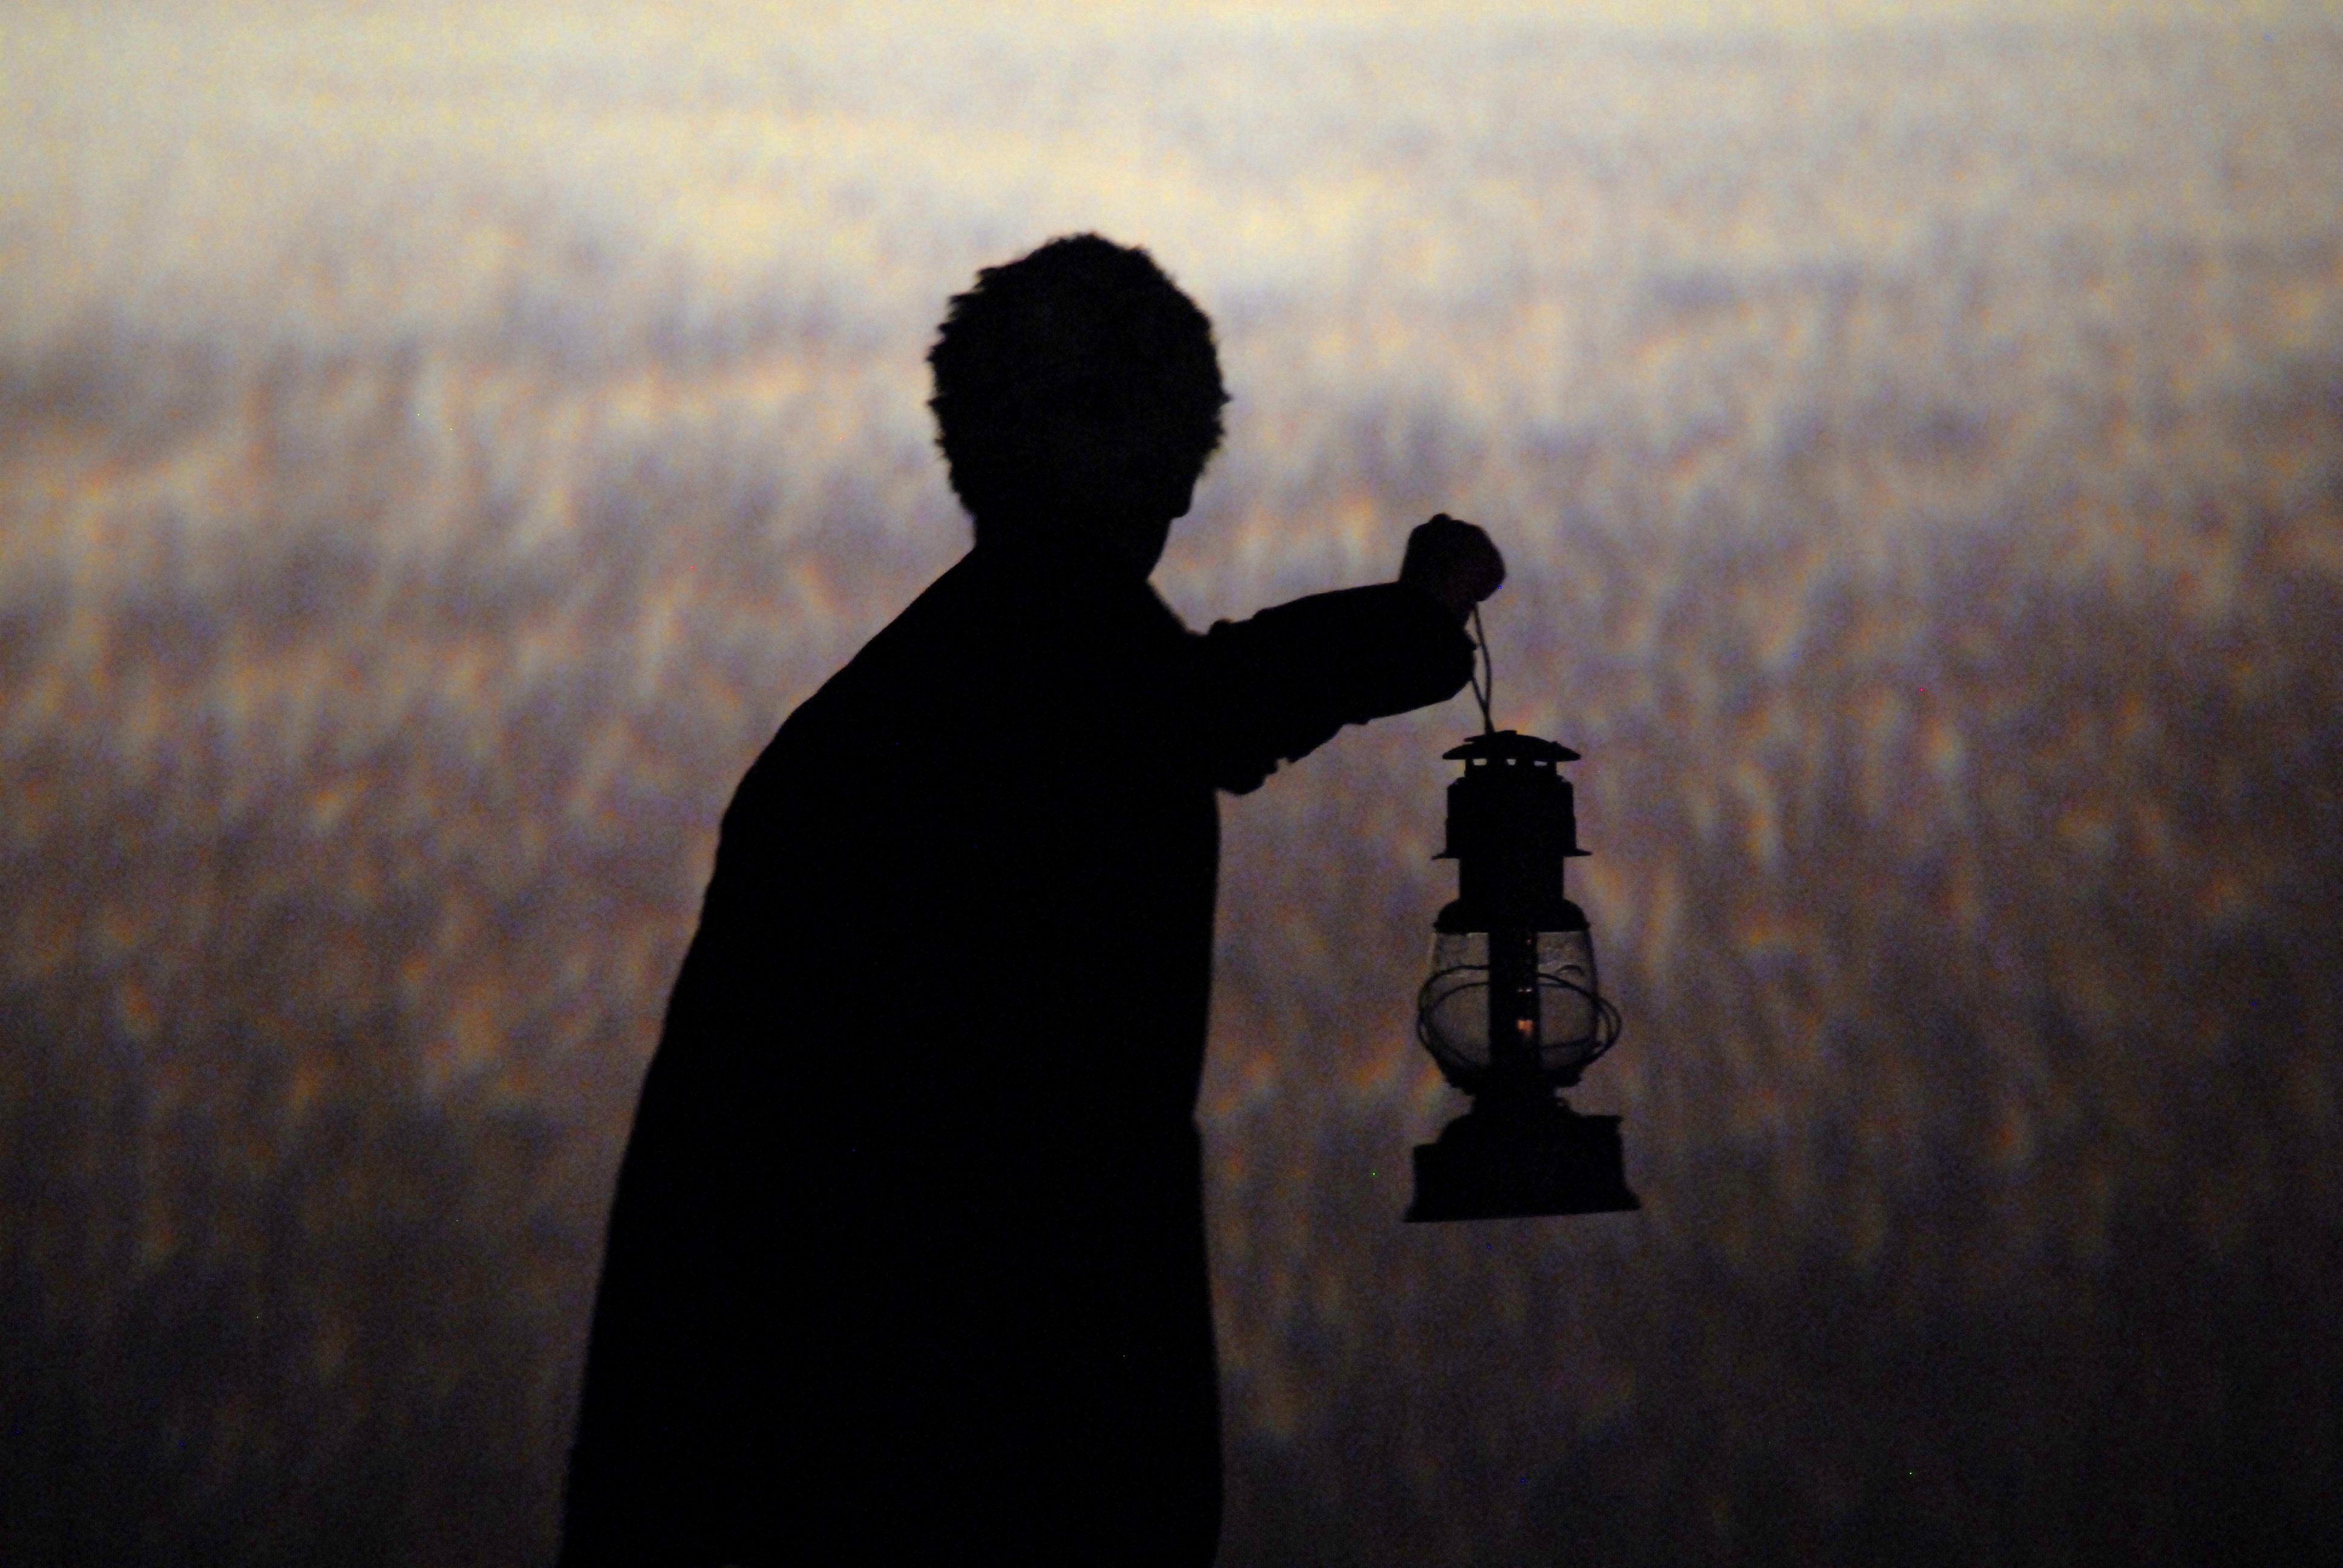 In front of a wheatfield backdrop, the silhouette of a person holding up an old-fashioned lantern (from a 2011 production of